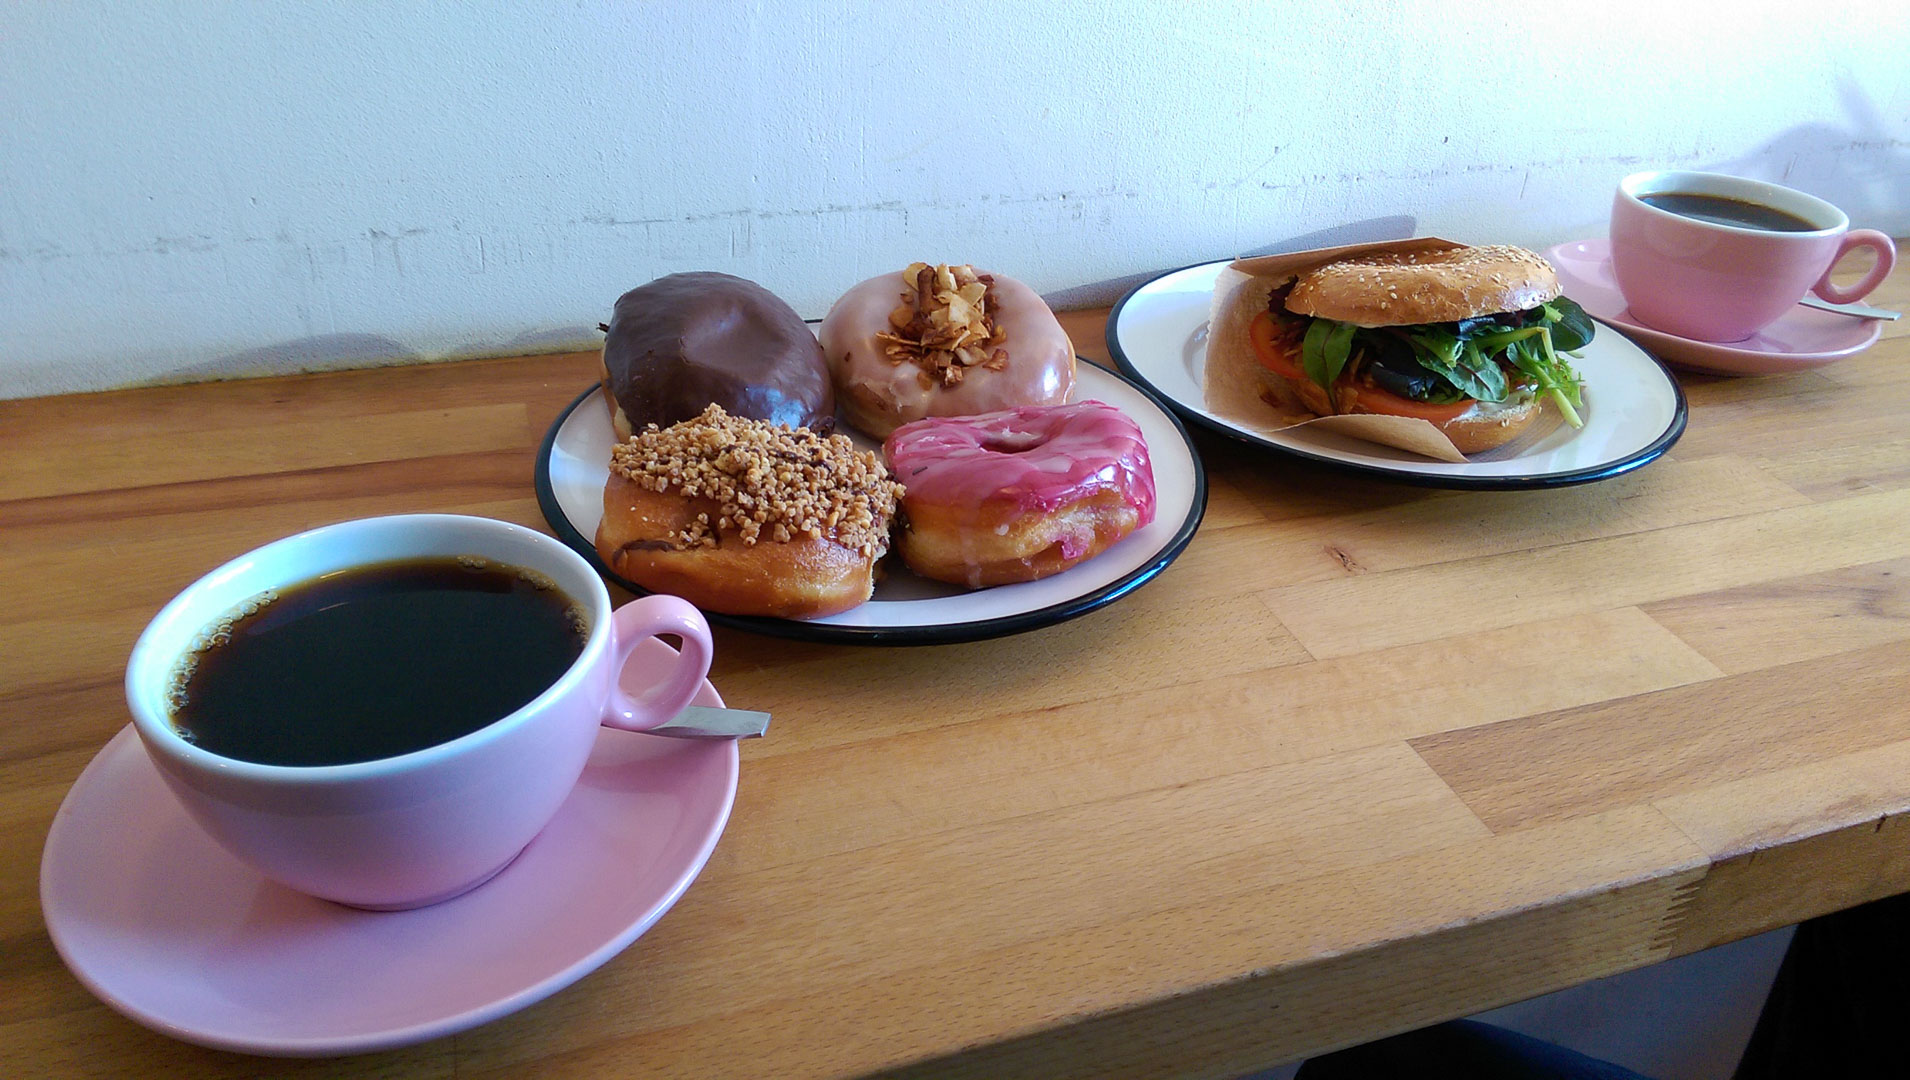 Doughnuts, bagels, and coffee…hubba hubba